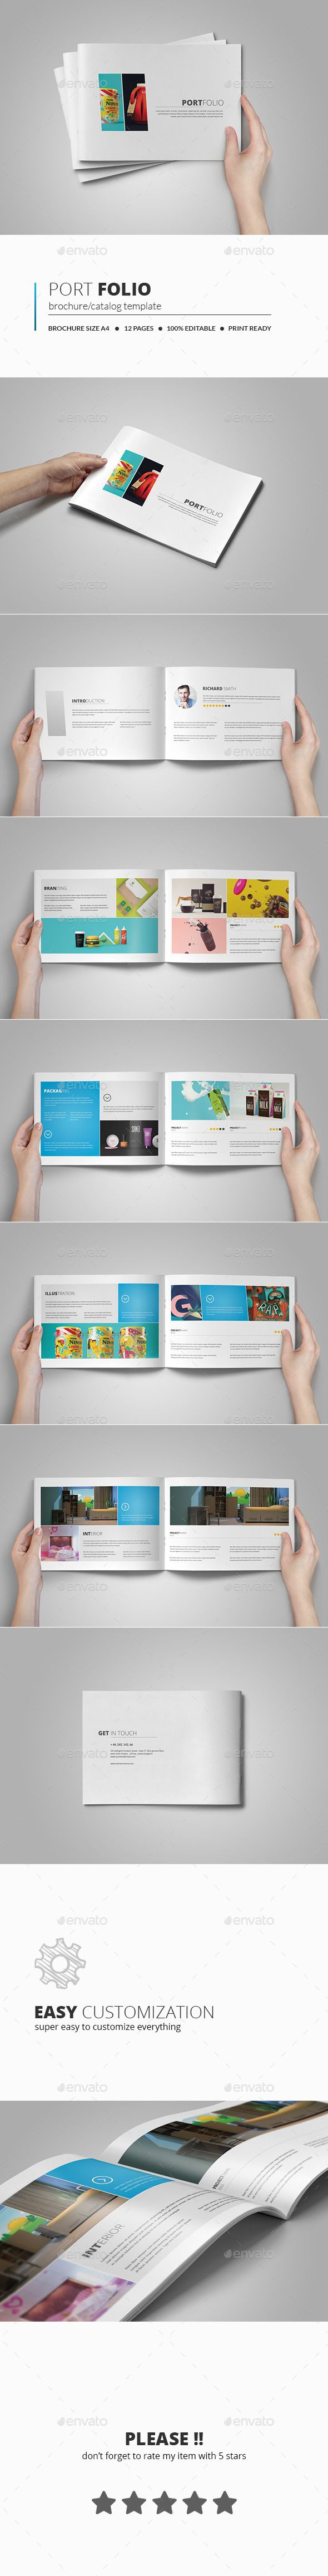 Portfolio Brochure Template. Download: http://graphicriver.net/item/portfolio-brochure-template/10985261?ref=ksioks